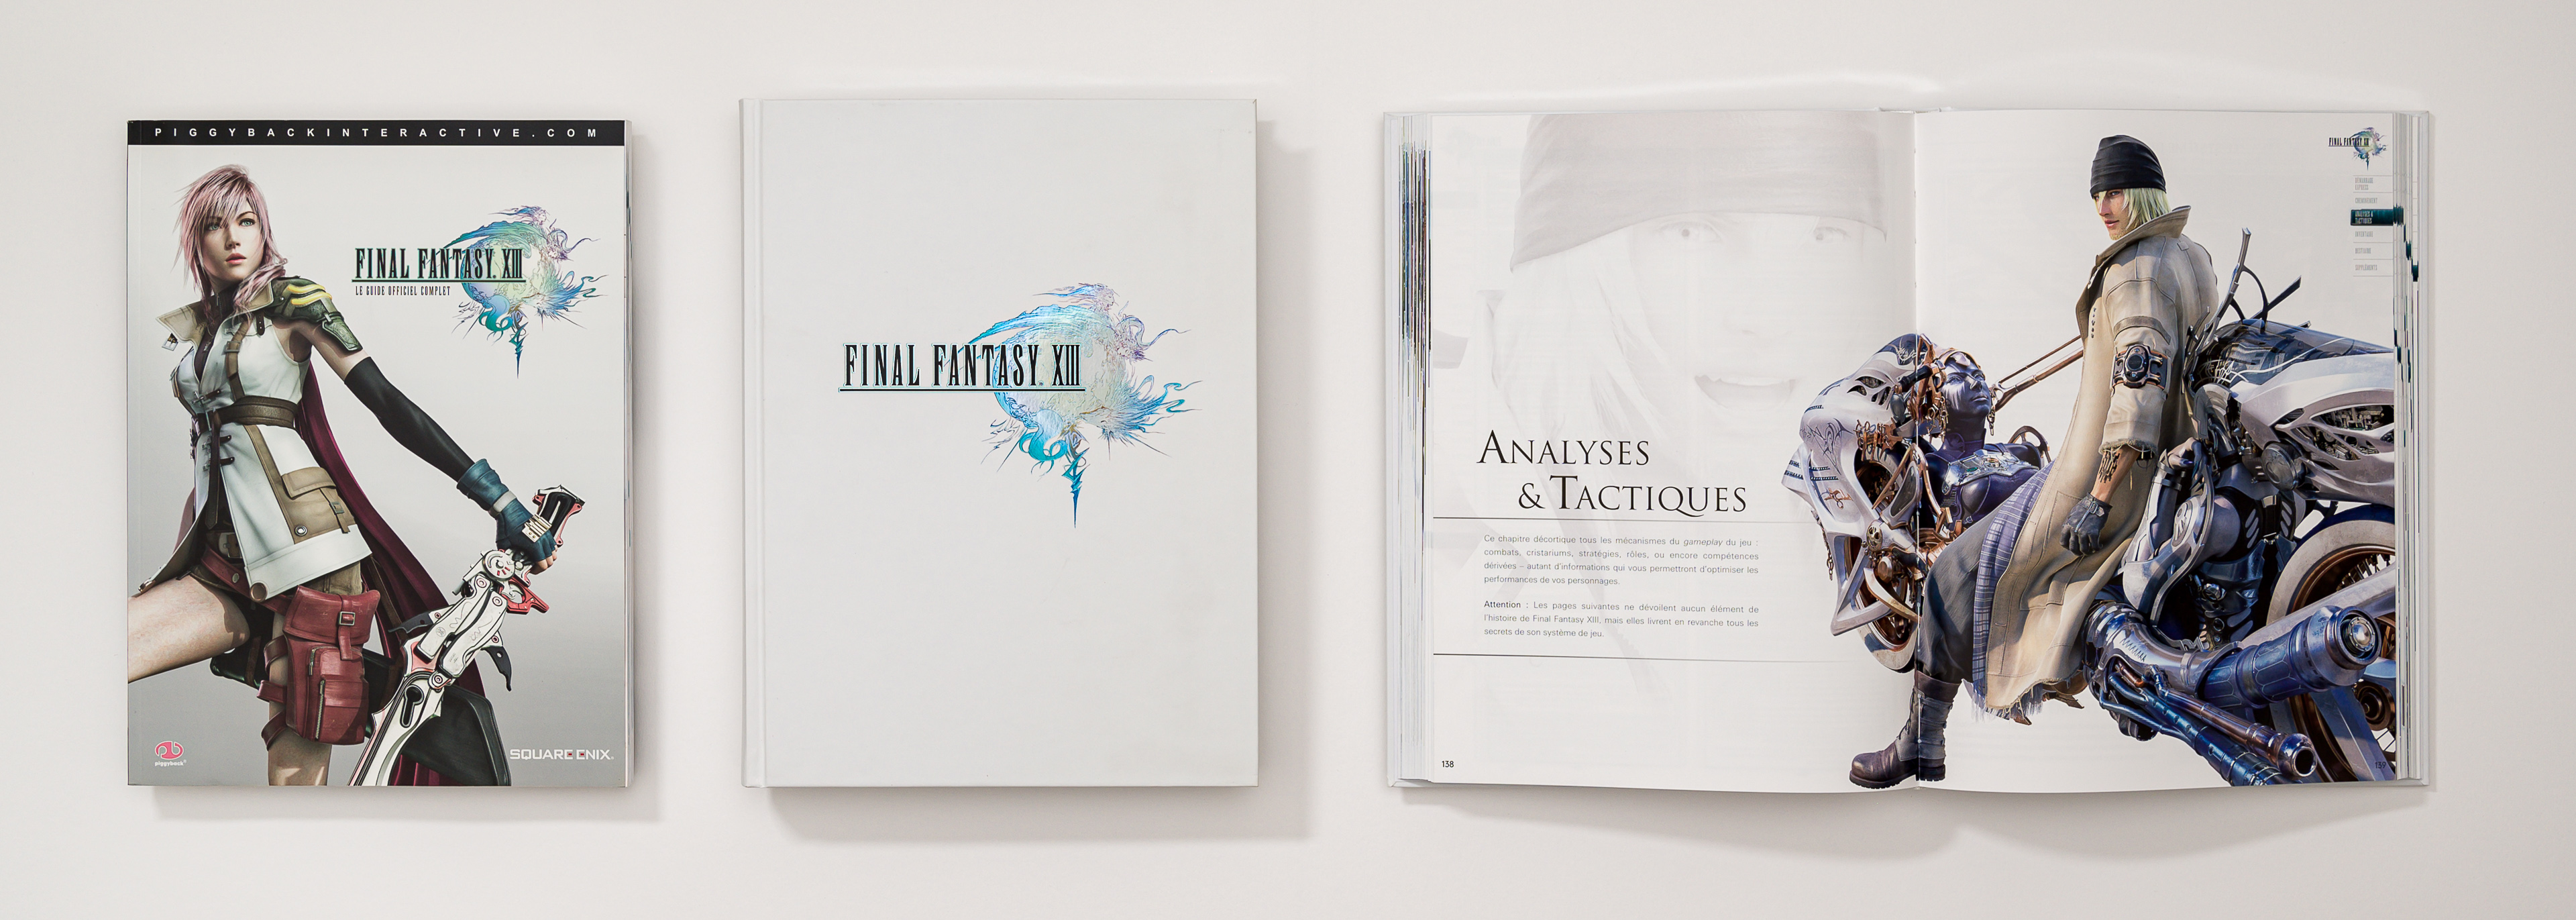 FFXIII_F_GUIDE-COLLAGE